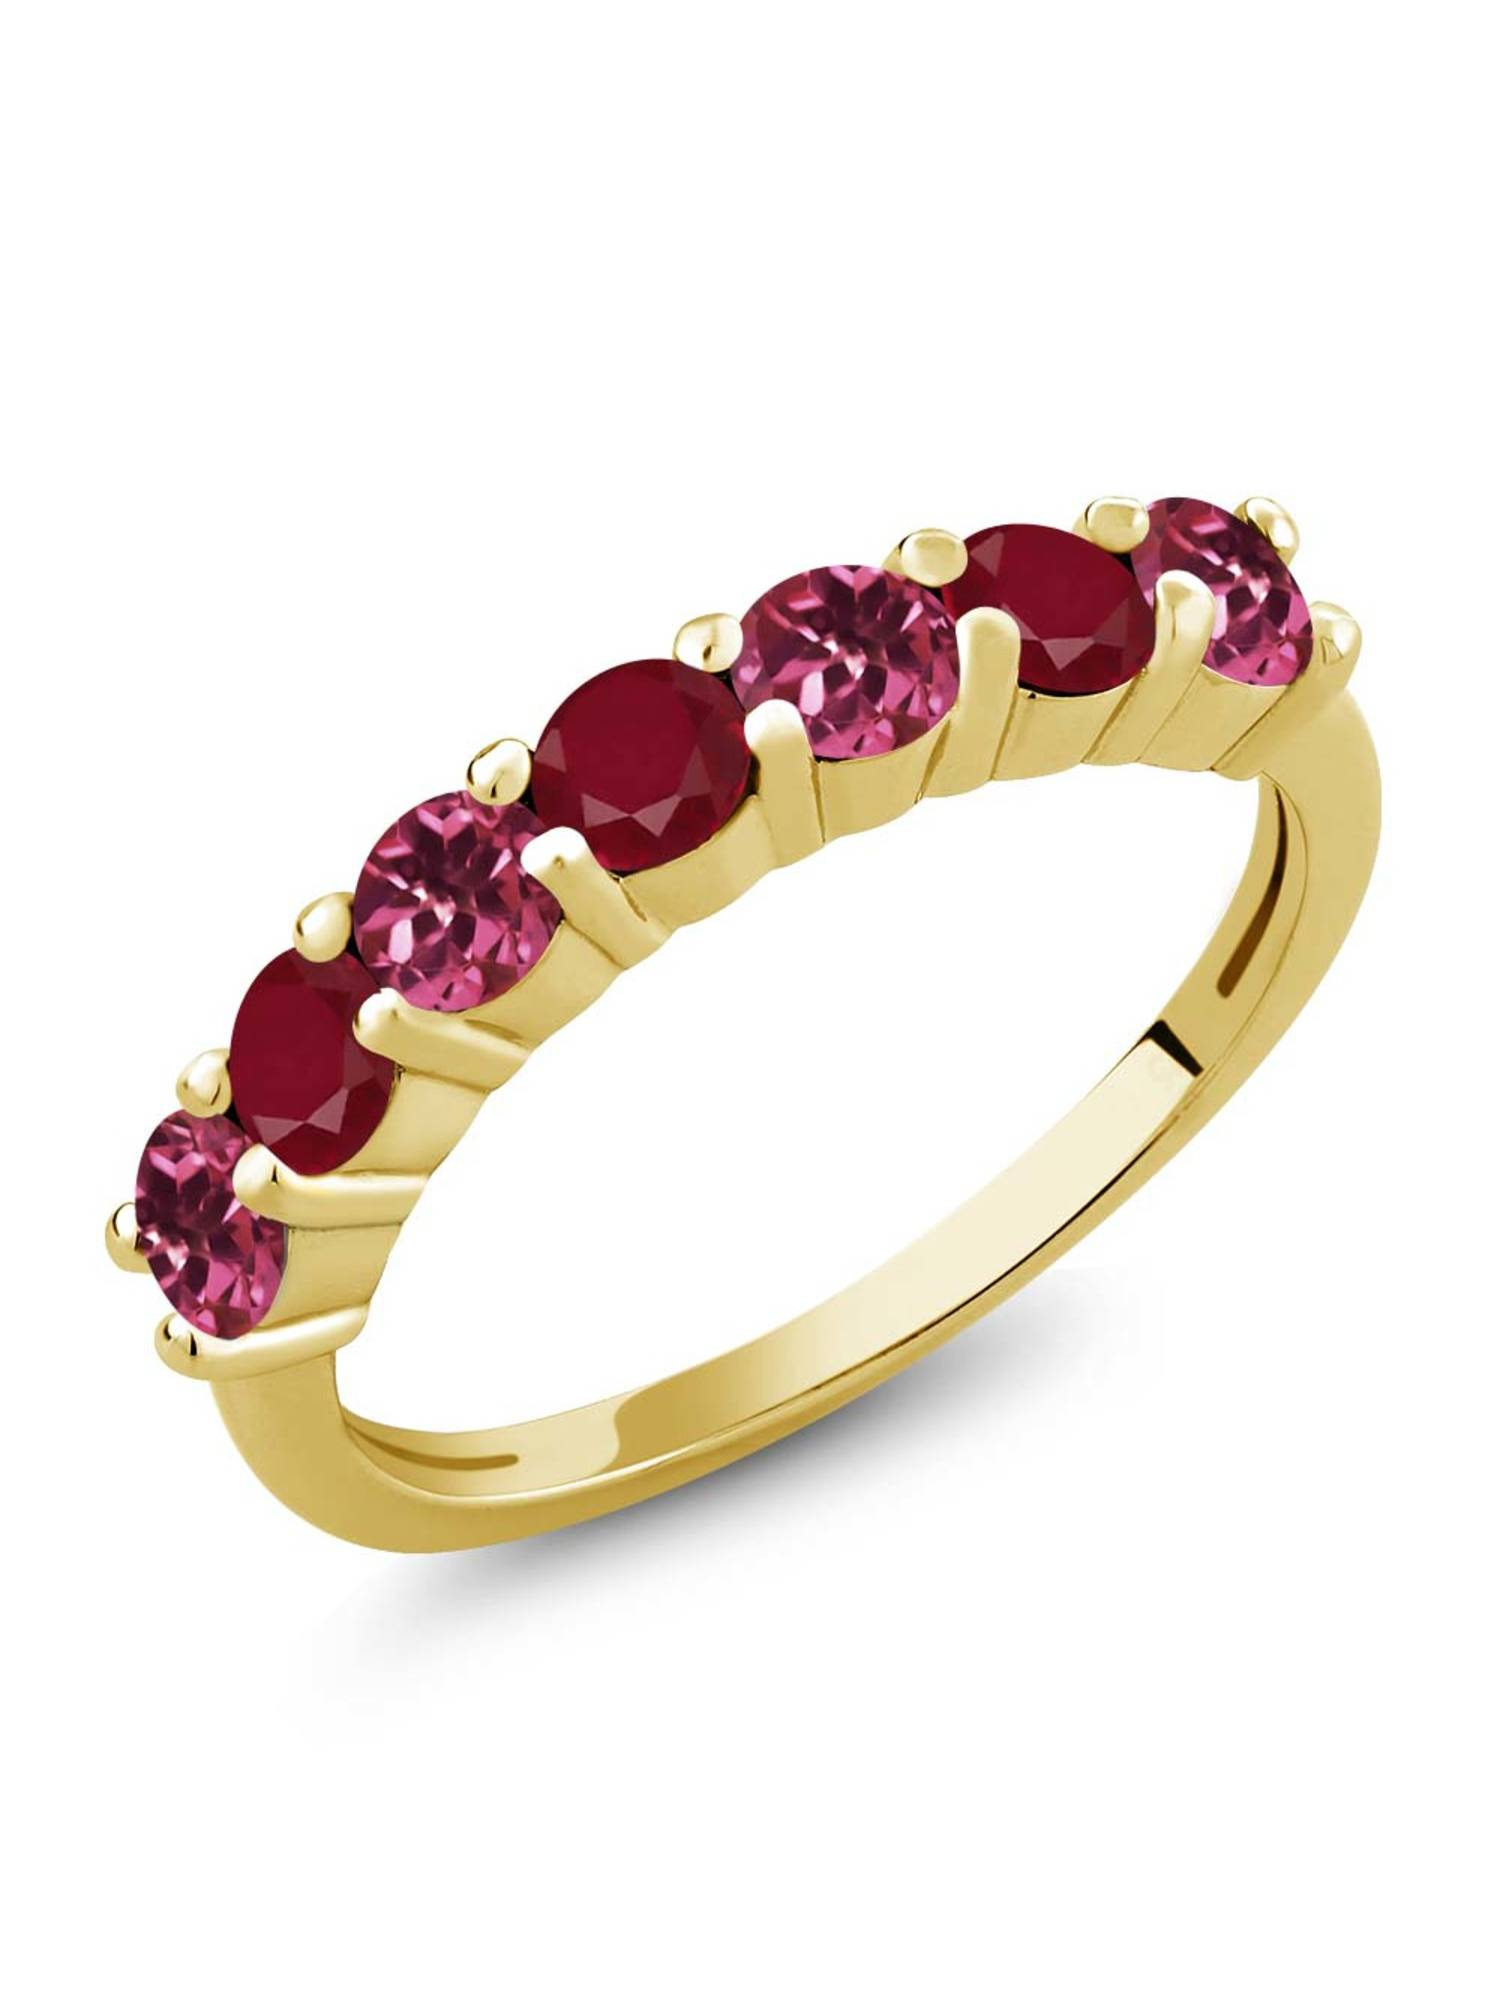 1.26 Ct Round Pink Tourmaline Red Ruby 18K Yellow Gold Plated Silver Ring by